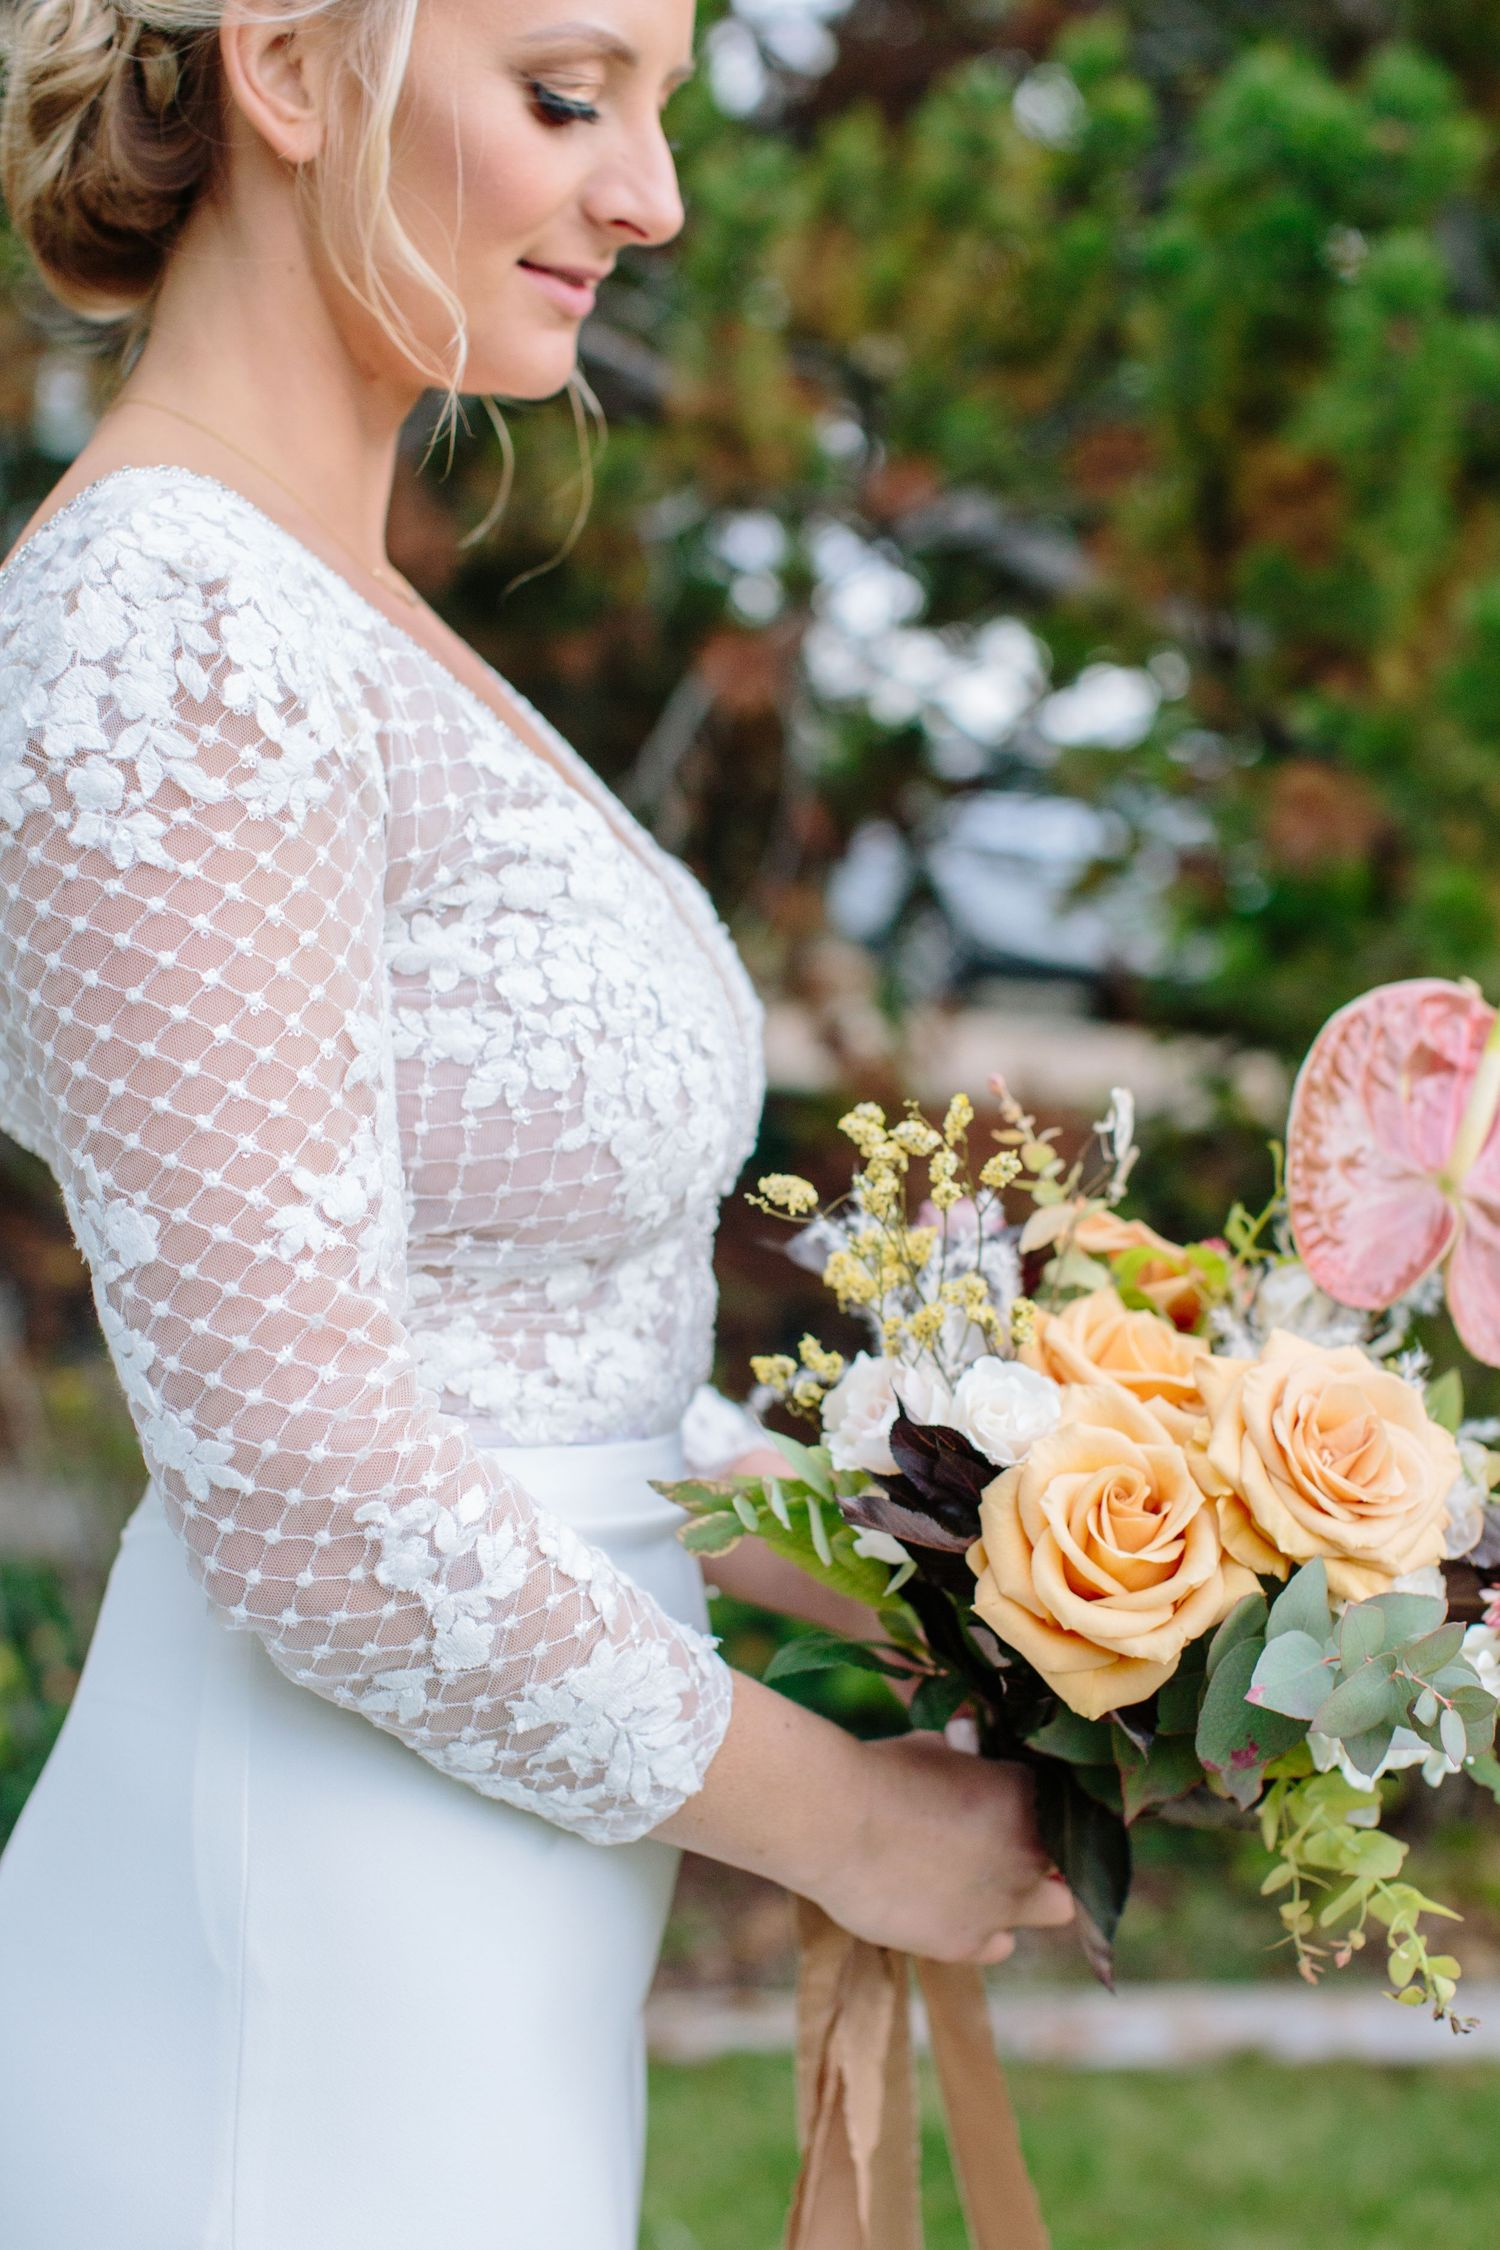 lace wedding dress and fall colour boquet